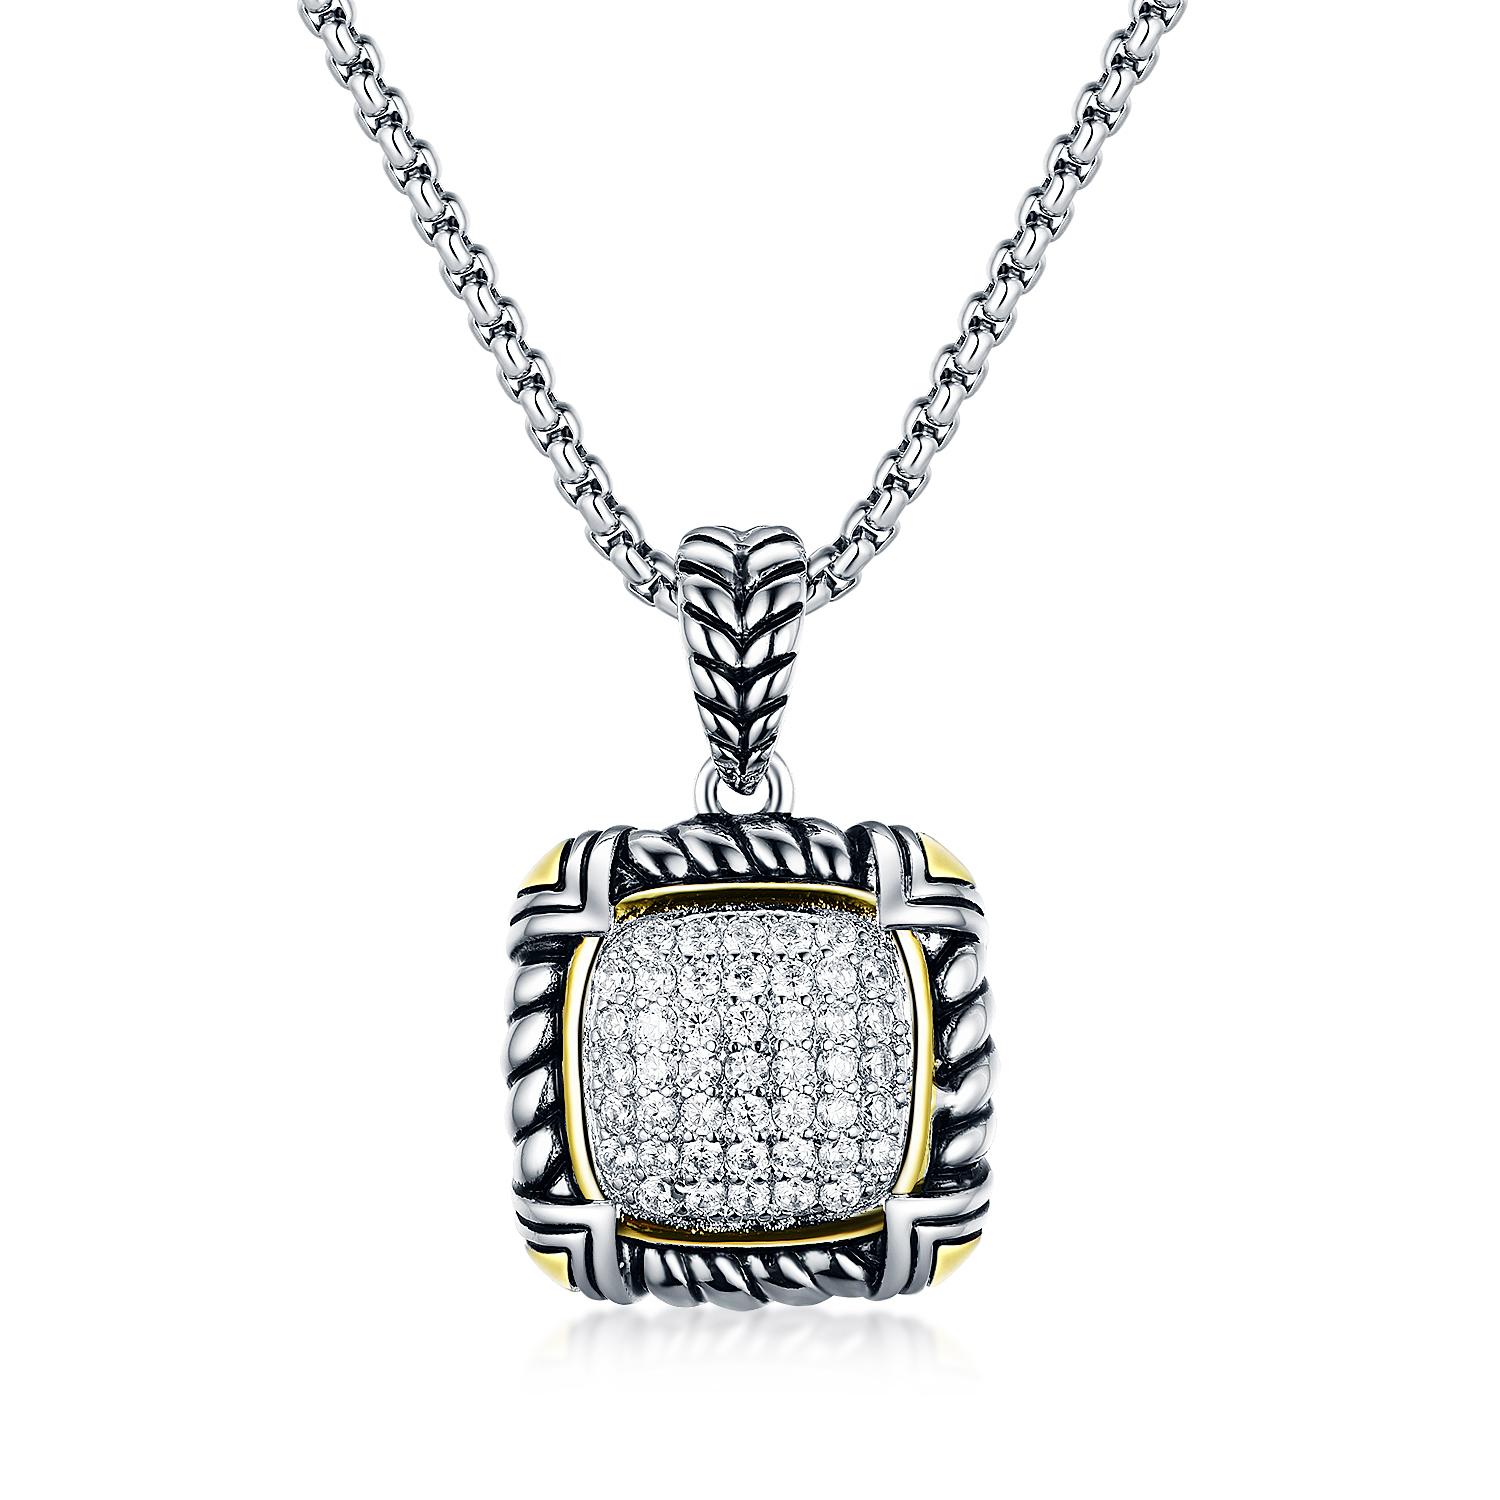 ST2697P-Designer inspired Cable texture 2-tone Square shape Pendant with White Pave Cubic Zircon in Brass/Copper from China Top Jewelry vendor